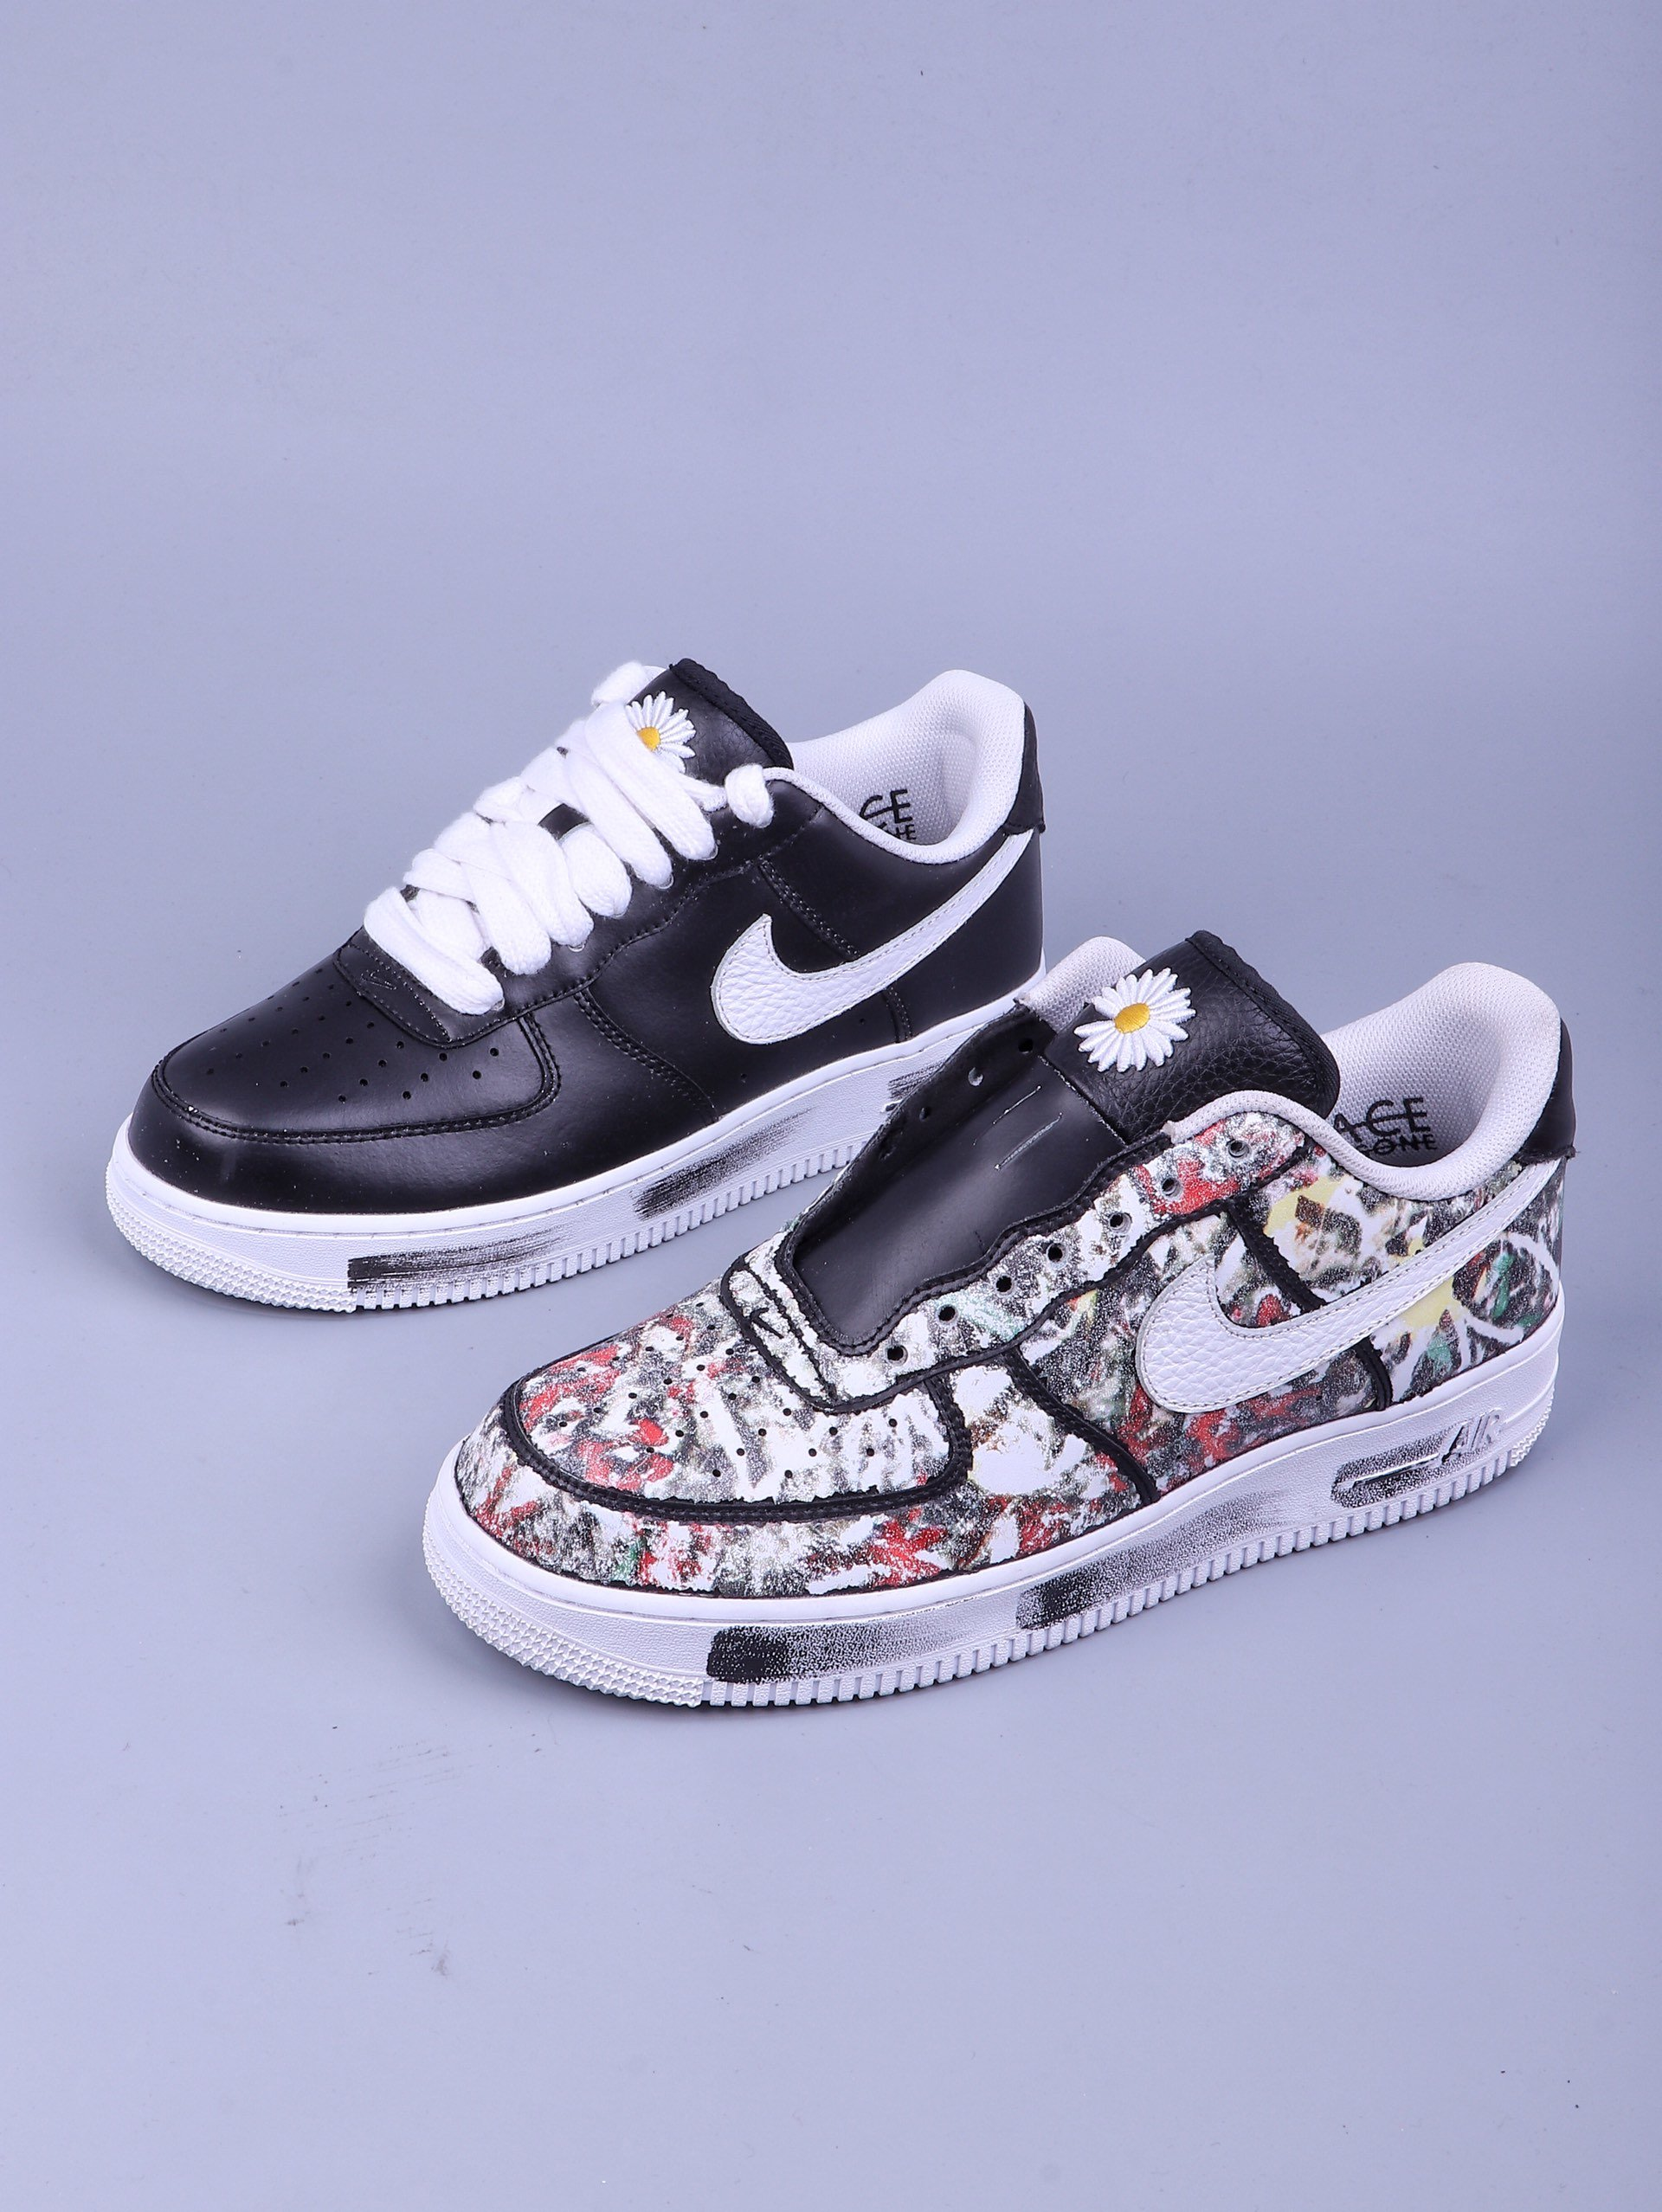 PEACEMINUSONE x NIKE Air Force 1 雏菊